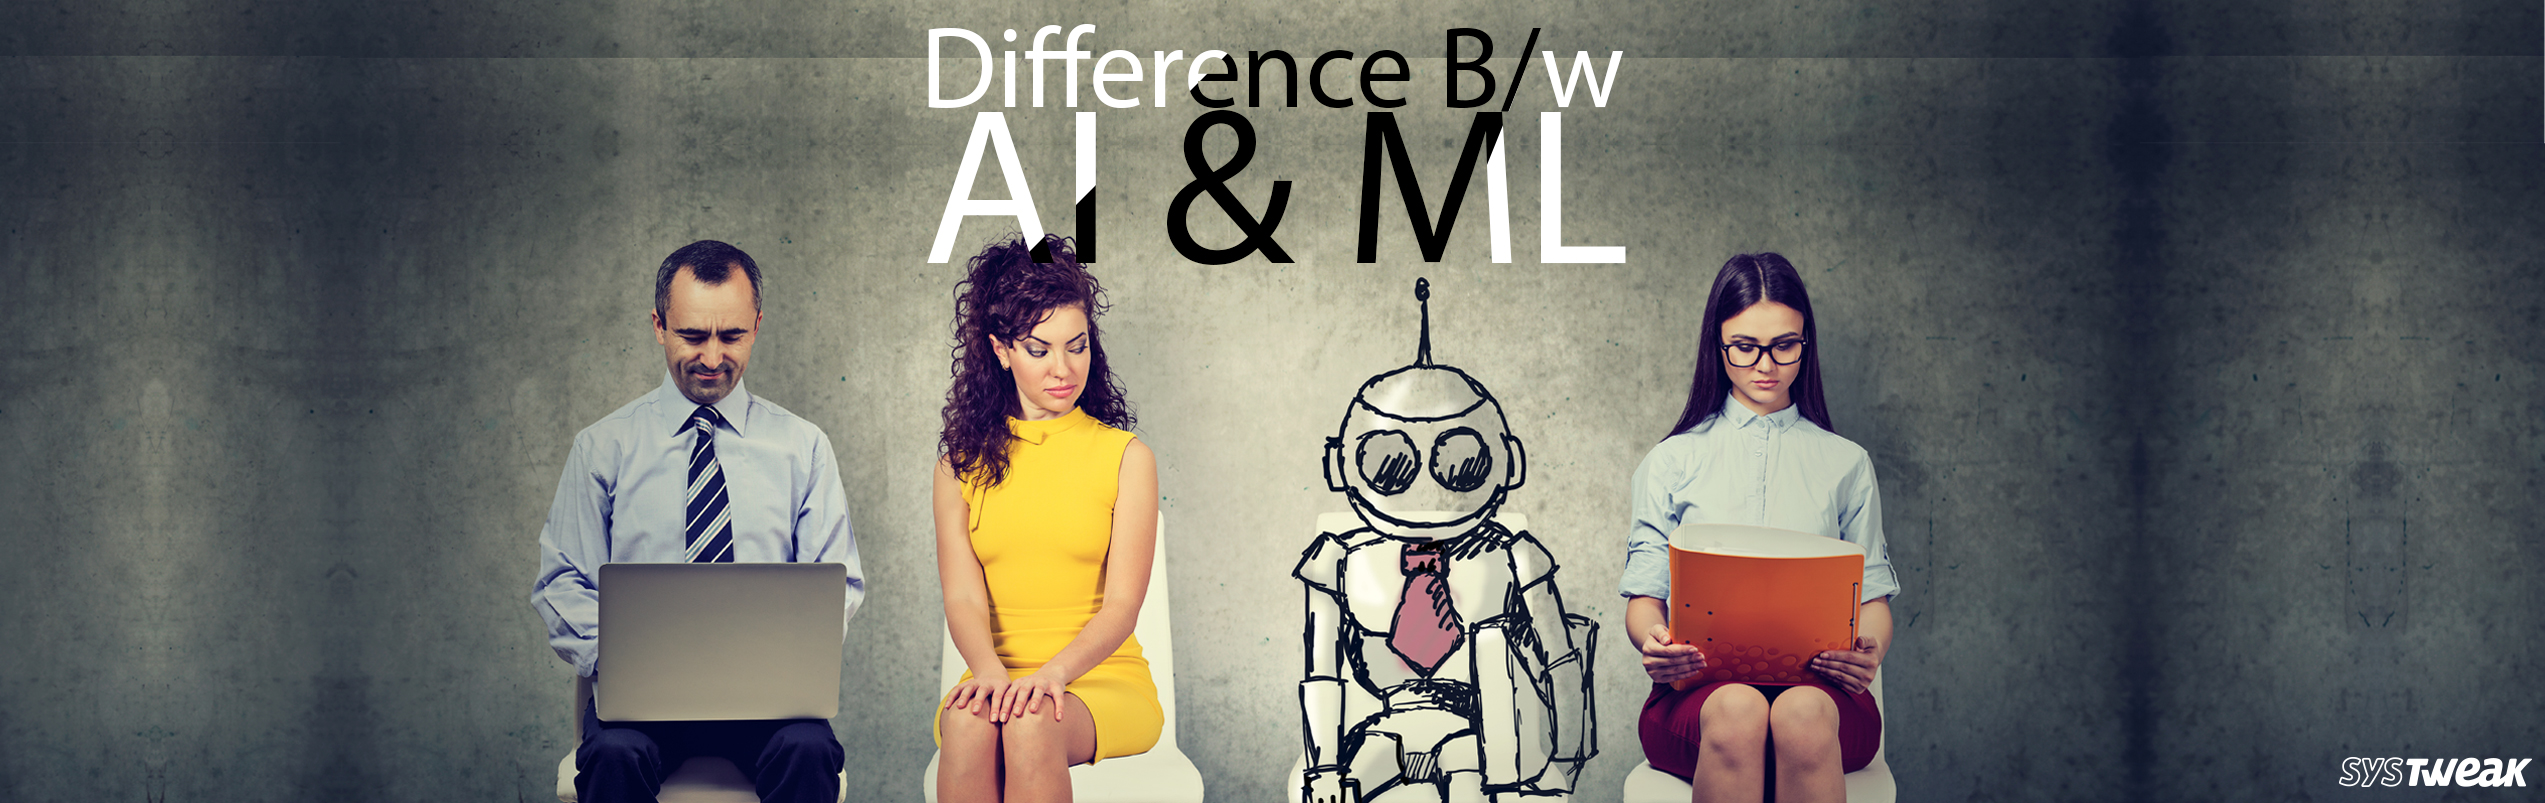 Difference Between Artificial Intelligence And Machine Learning